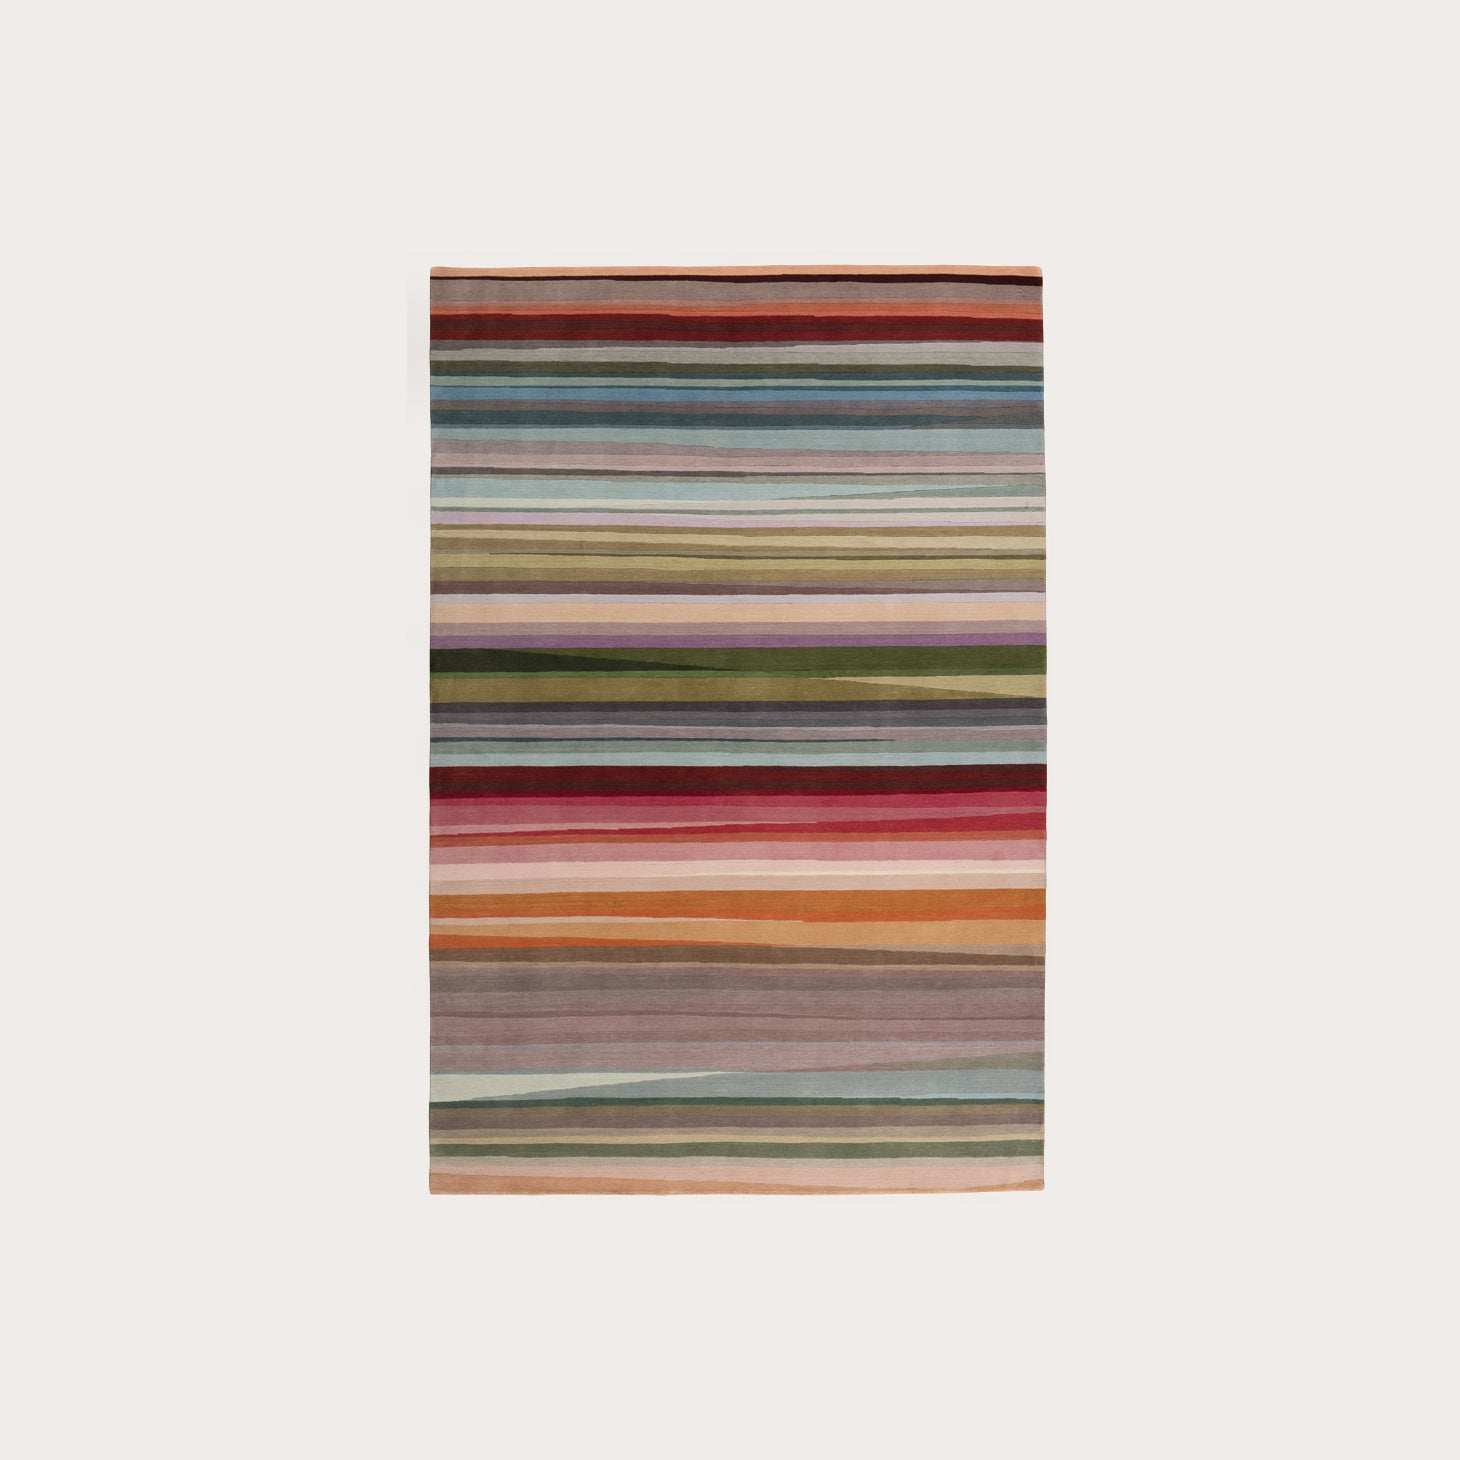 Festival Floor Coverings Paul Smith Designer Furniture Sku: 391-150-11247